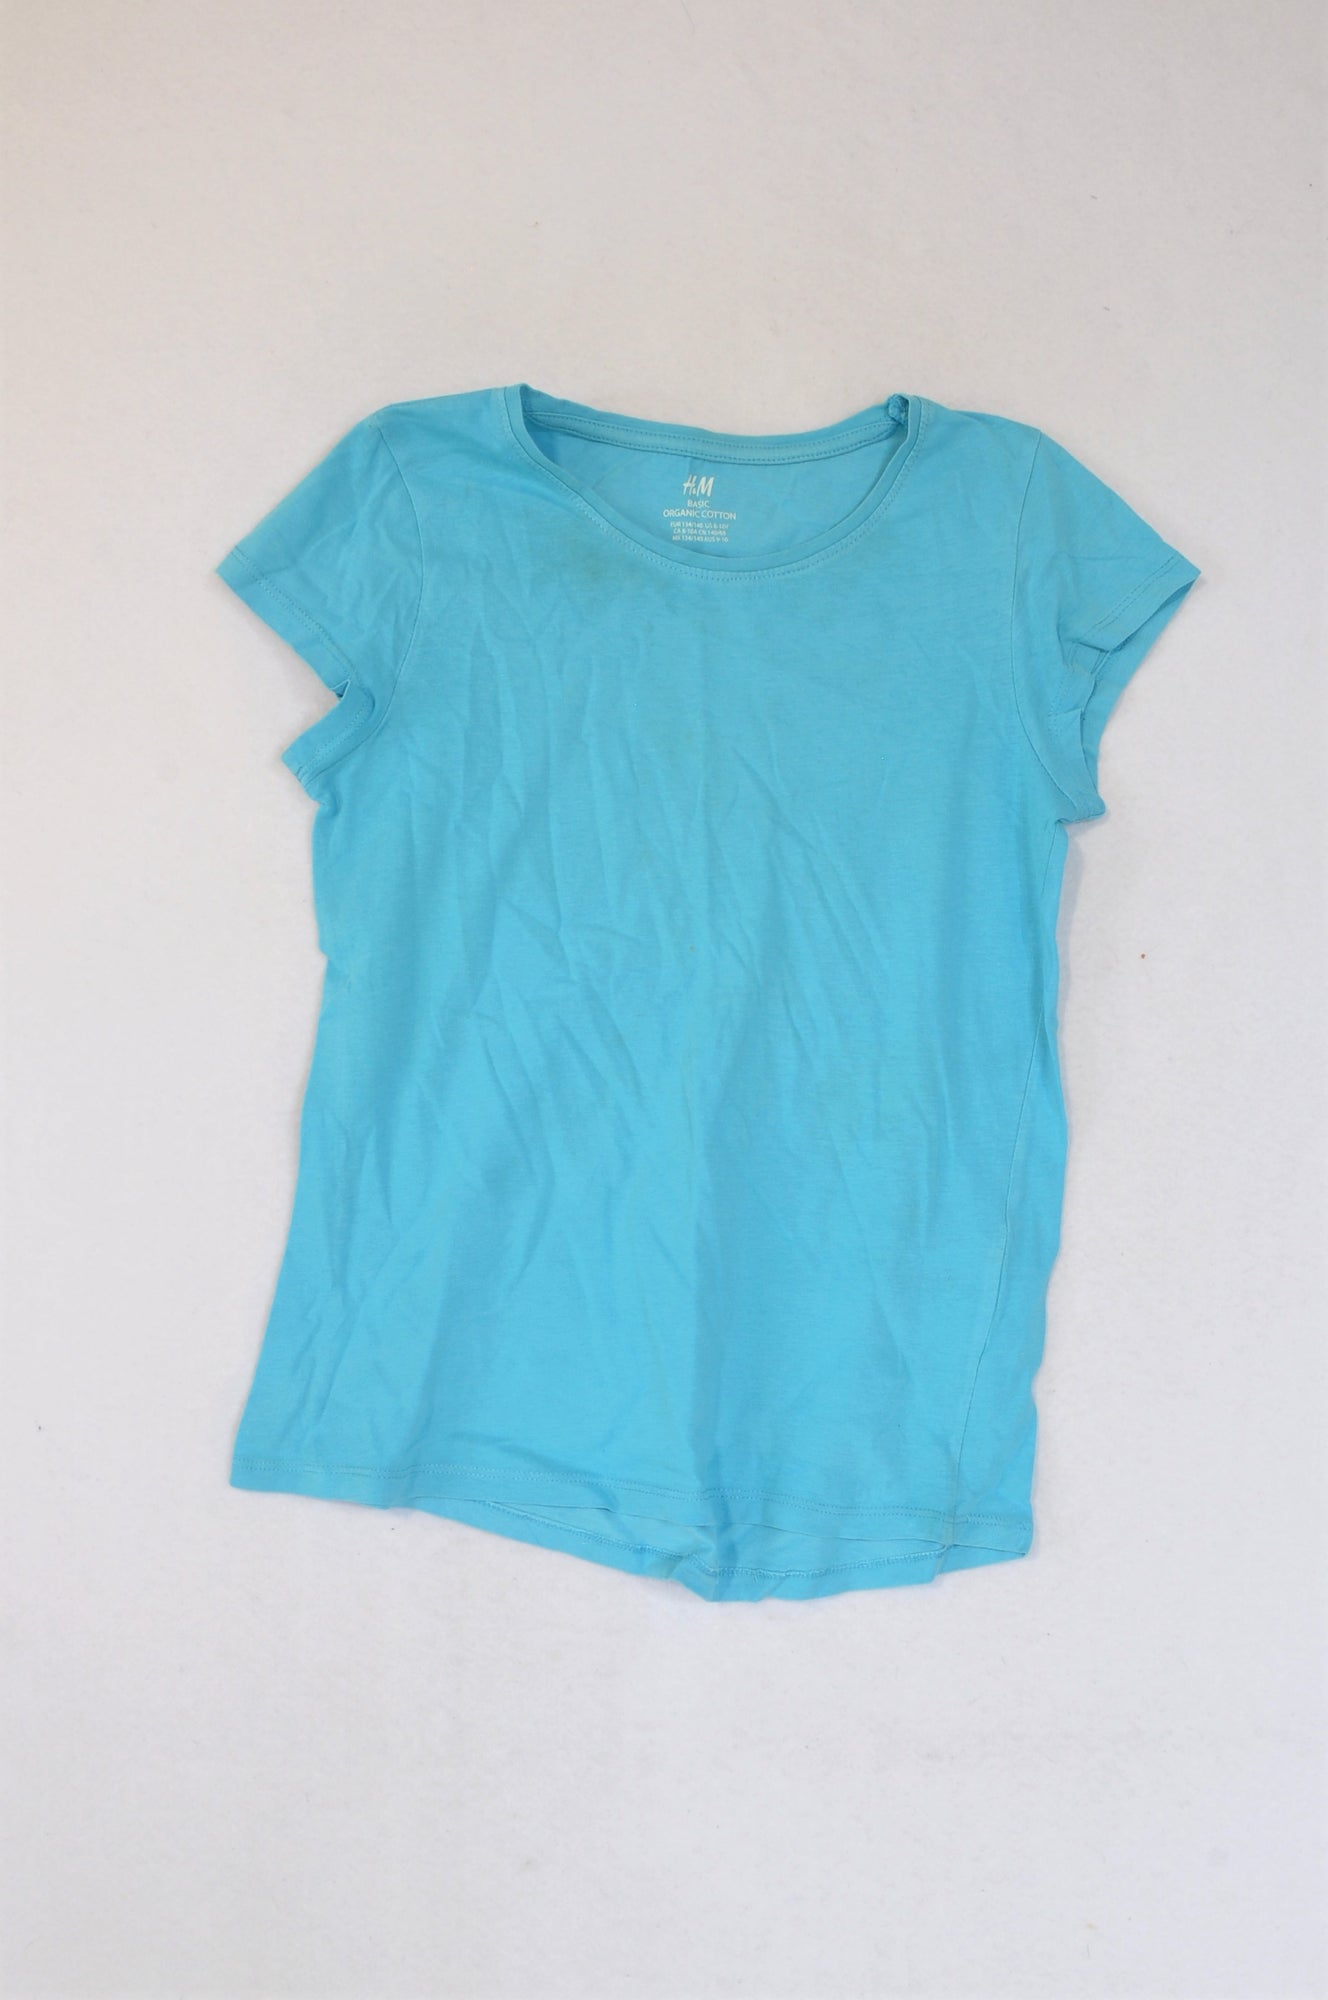 H&M Light Blue Cap Sleeve Organic Cotton T-shirt Girls 8-10 years